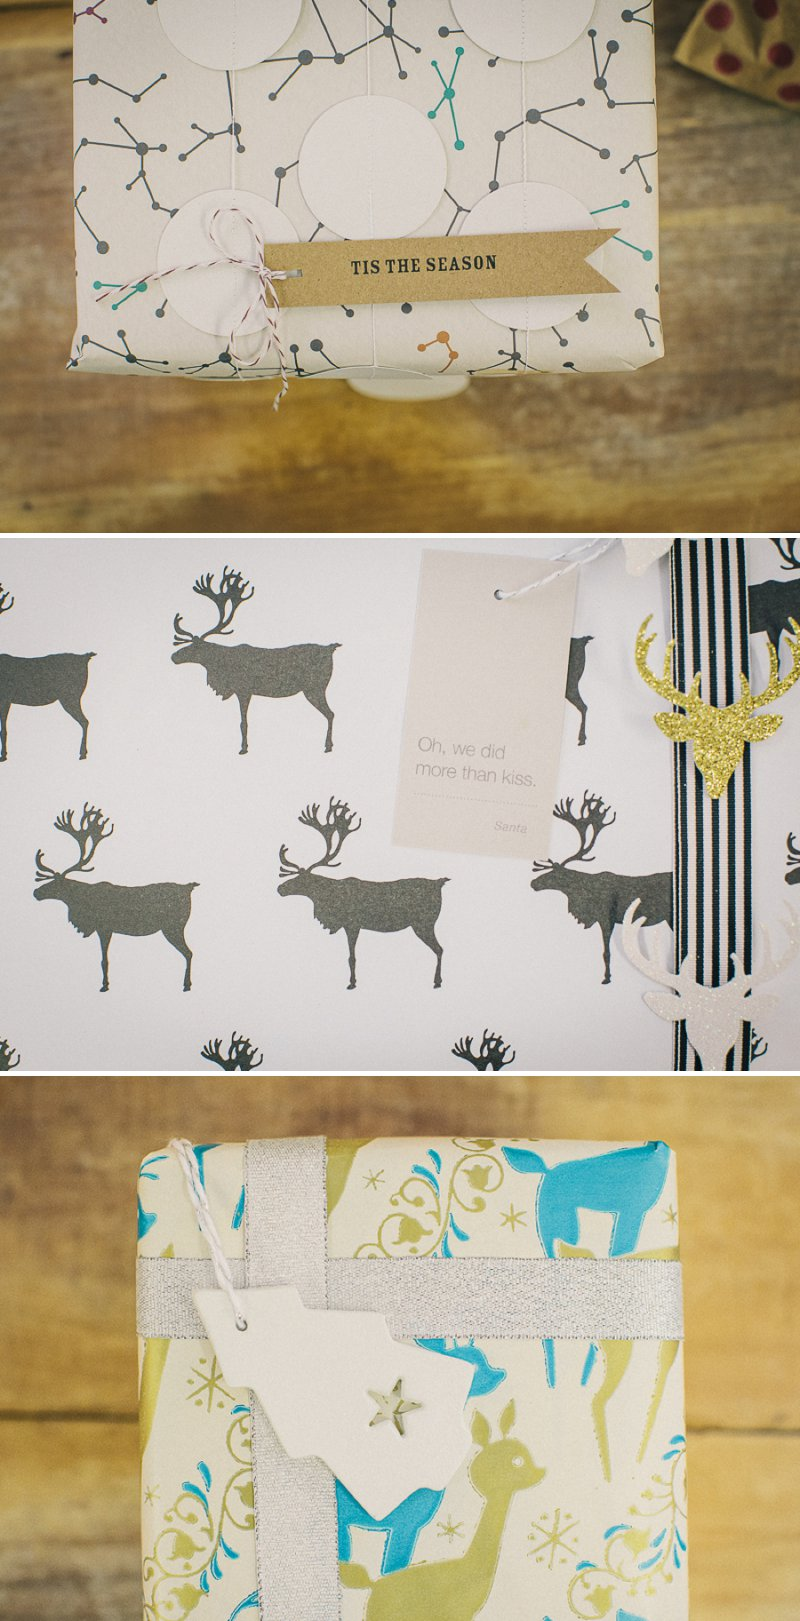 Nine Beautiful And Creative Christmas DIY Gift Wrap Ideas With Ribbons, Fun Gift Tags and Gorgeous Wrapping Paper From Etsy Suppliers._0004